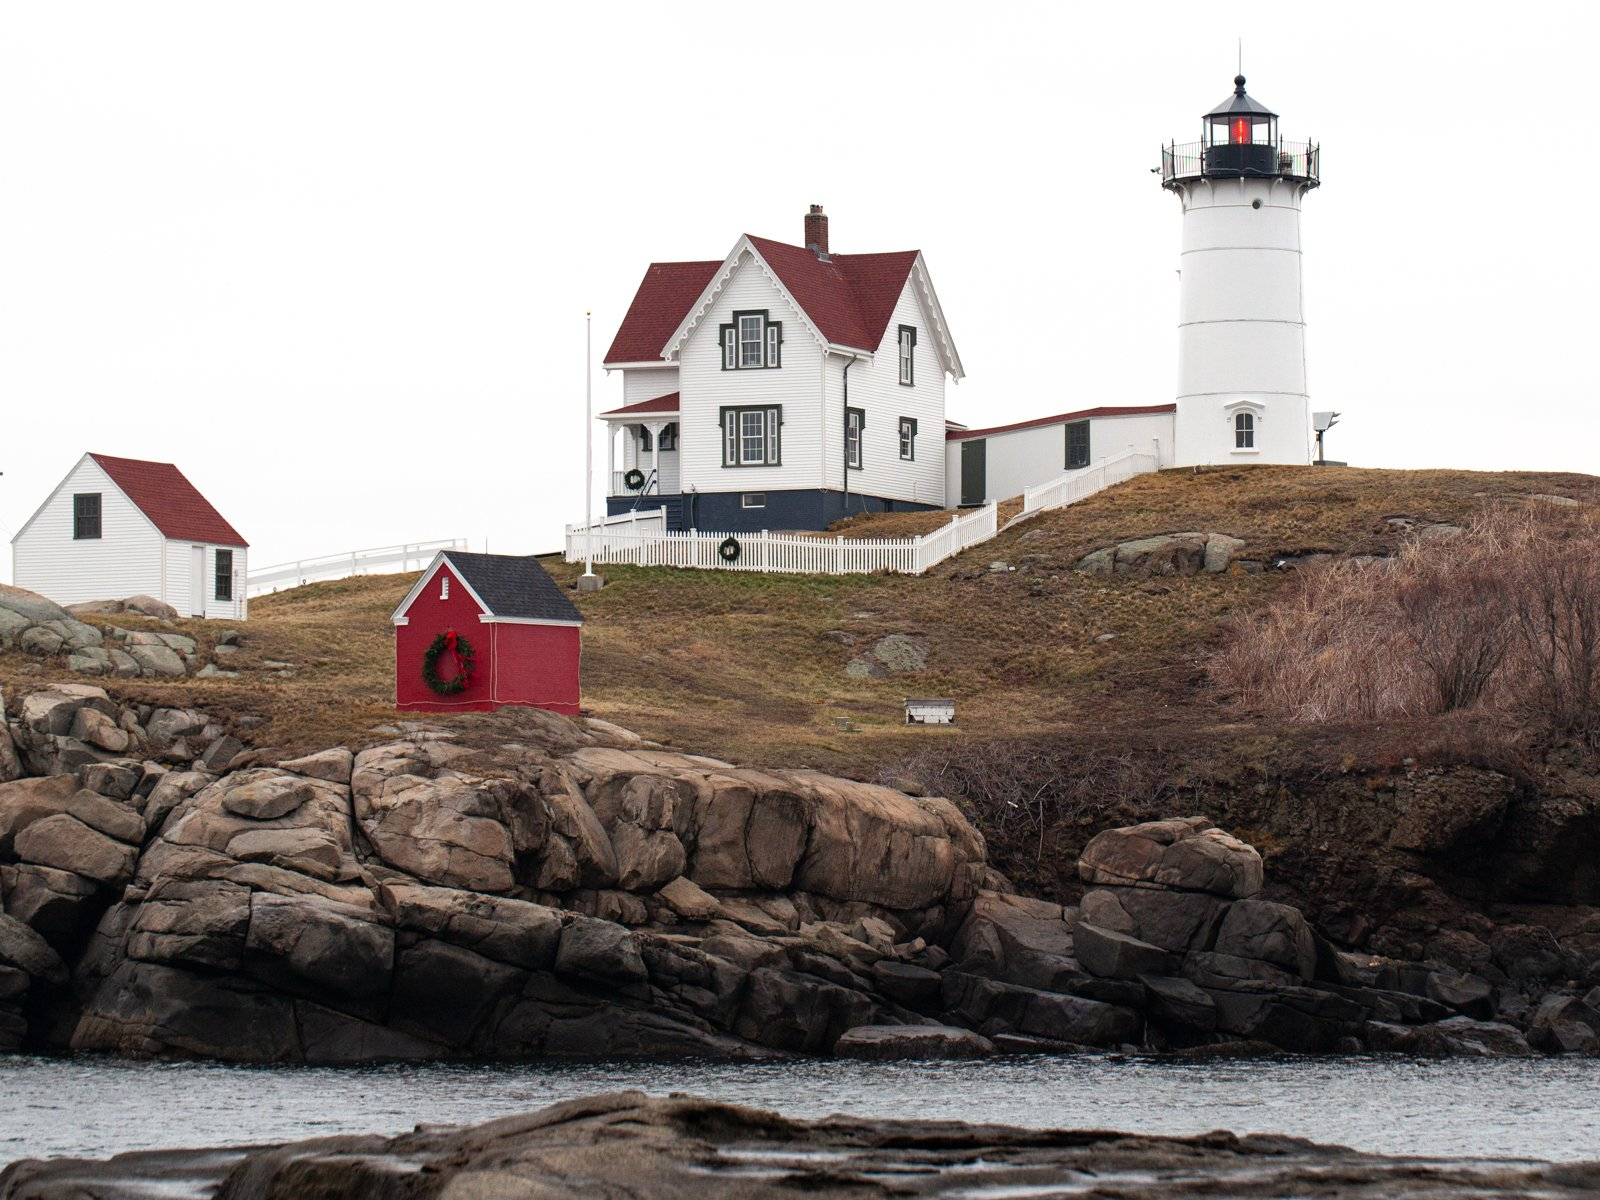 Nubble Light in York, ME is one of the most iconic New England lighthouses.